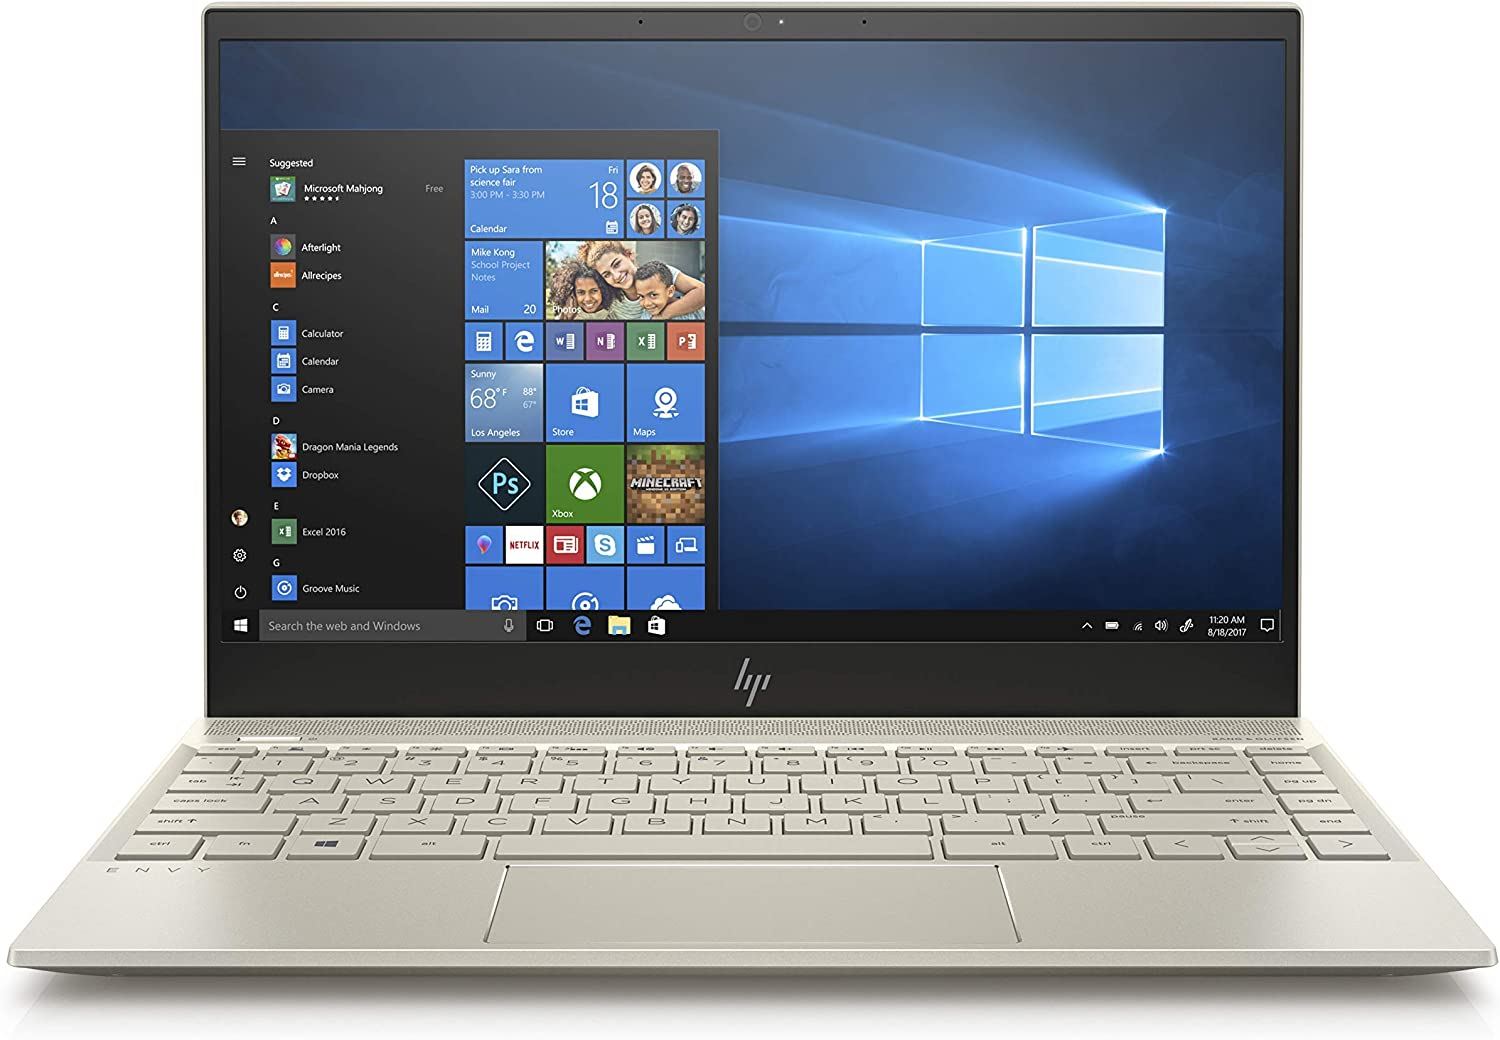 HP Envy 13-AH0051WM, 13.3in Full HD Laptop, Intel Core i5-8250U, 8GB RAM, 128GB SSD, Intel UHD 620, Windows 10 Pale-Gold (Renewed)